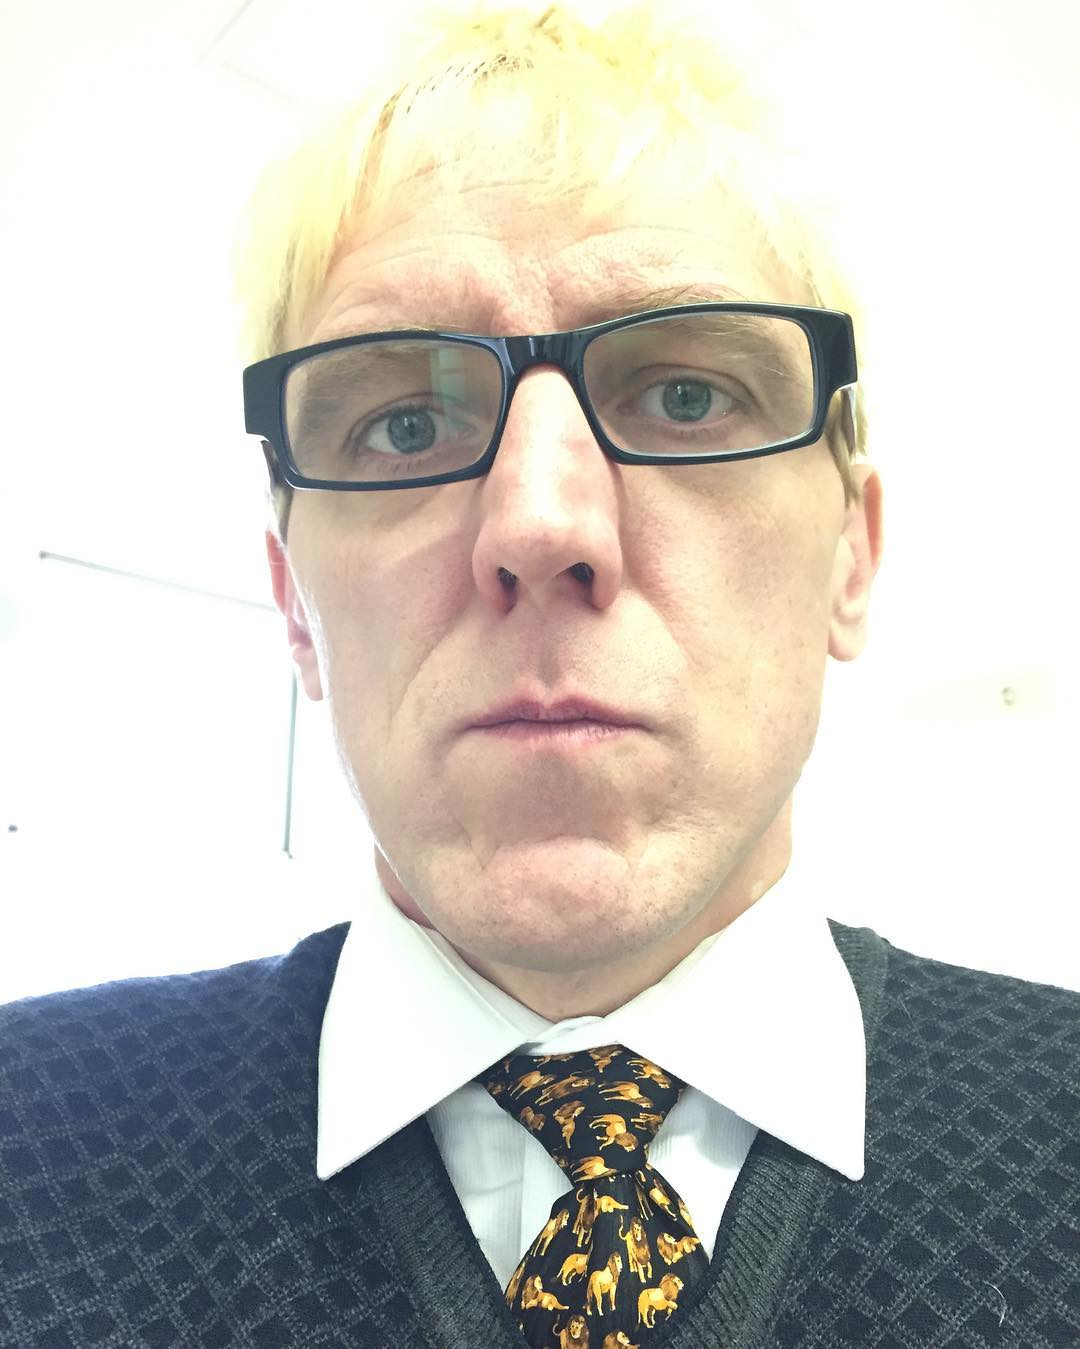 First #tiedayfriday of 2017 – I proclaim the year of the lion – inspired by @lawriephipps' snipe tie. (Also wearing metal collar stays for the first time)